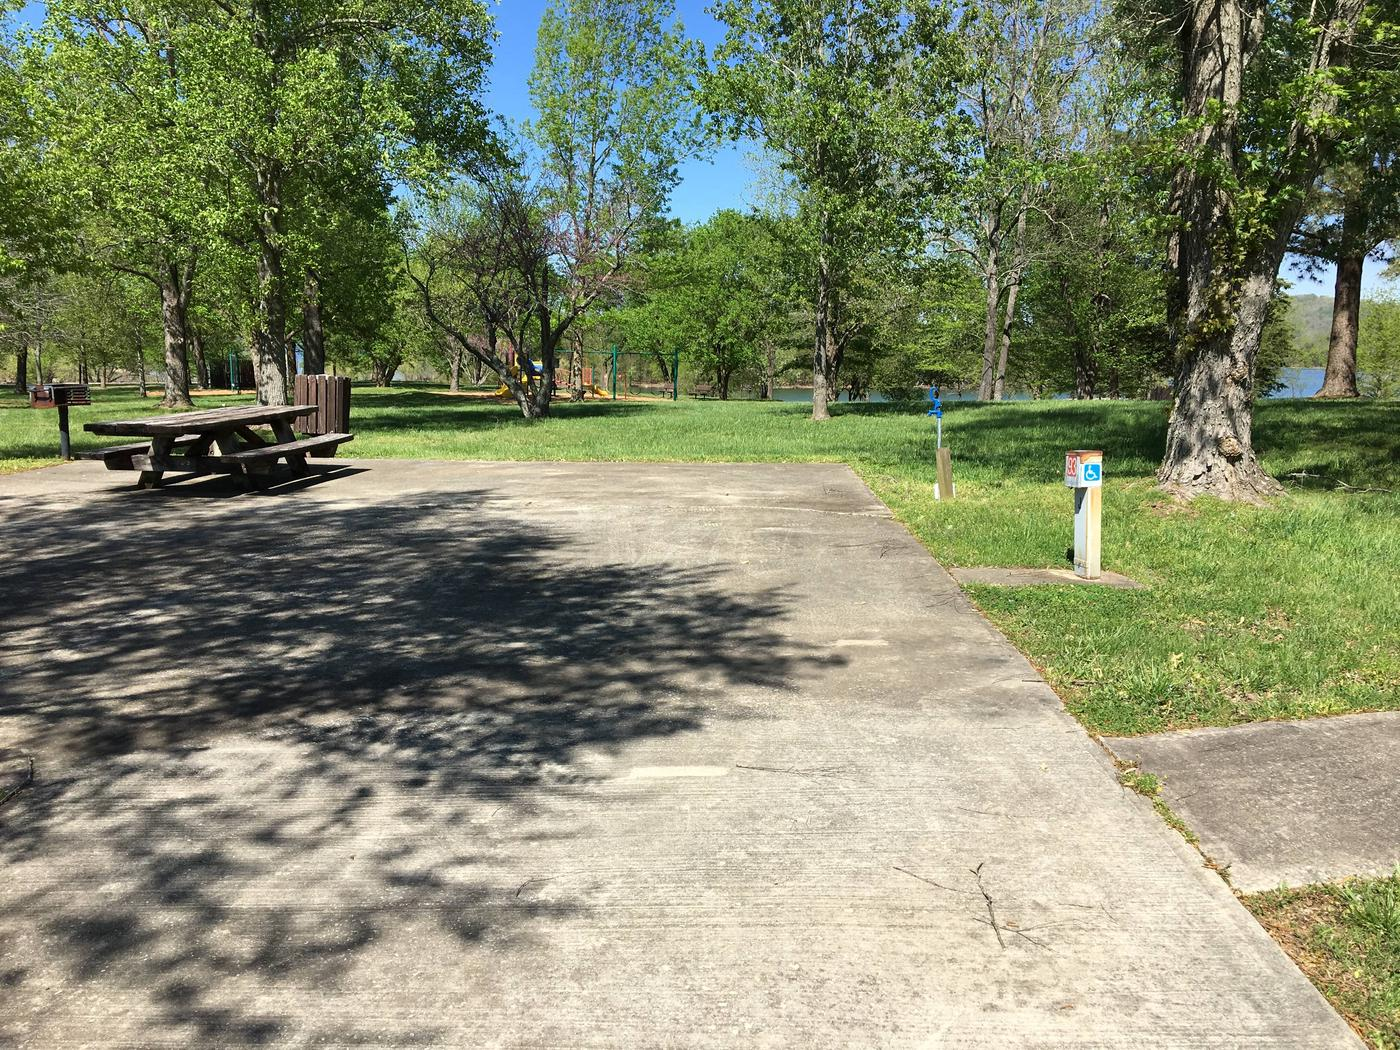 LILLYDALE CAMPGROUND SITE # 93 ACCESSIBLE SITE MID SITELILLYDALE CAMPGROUND SITE # 93 ACCESSIBLE SITE